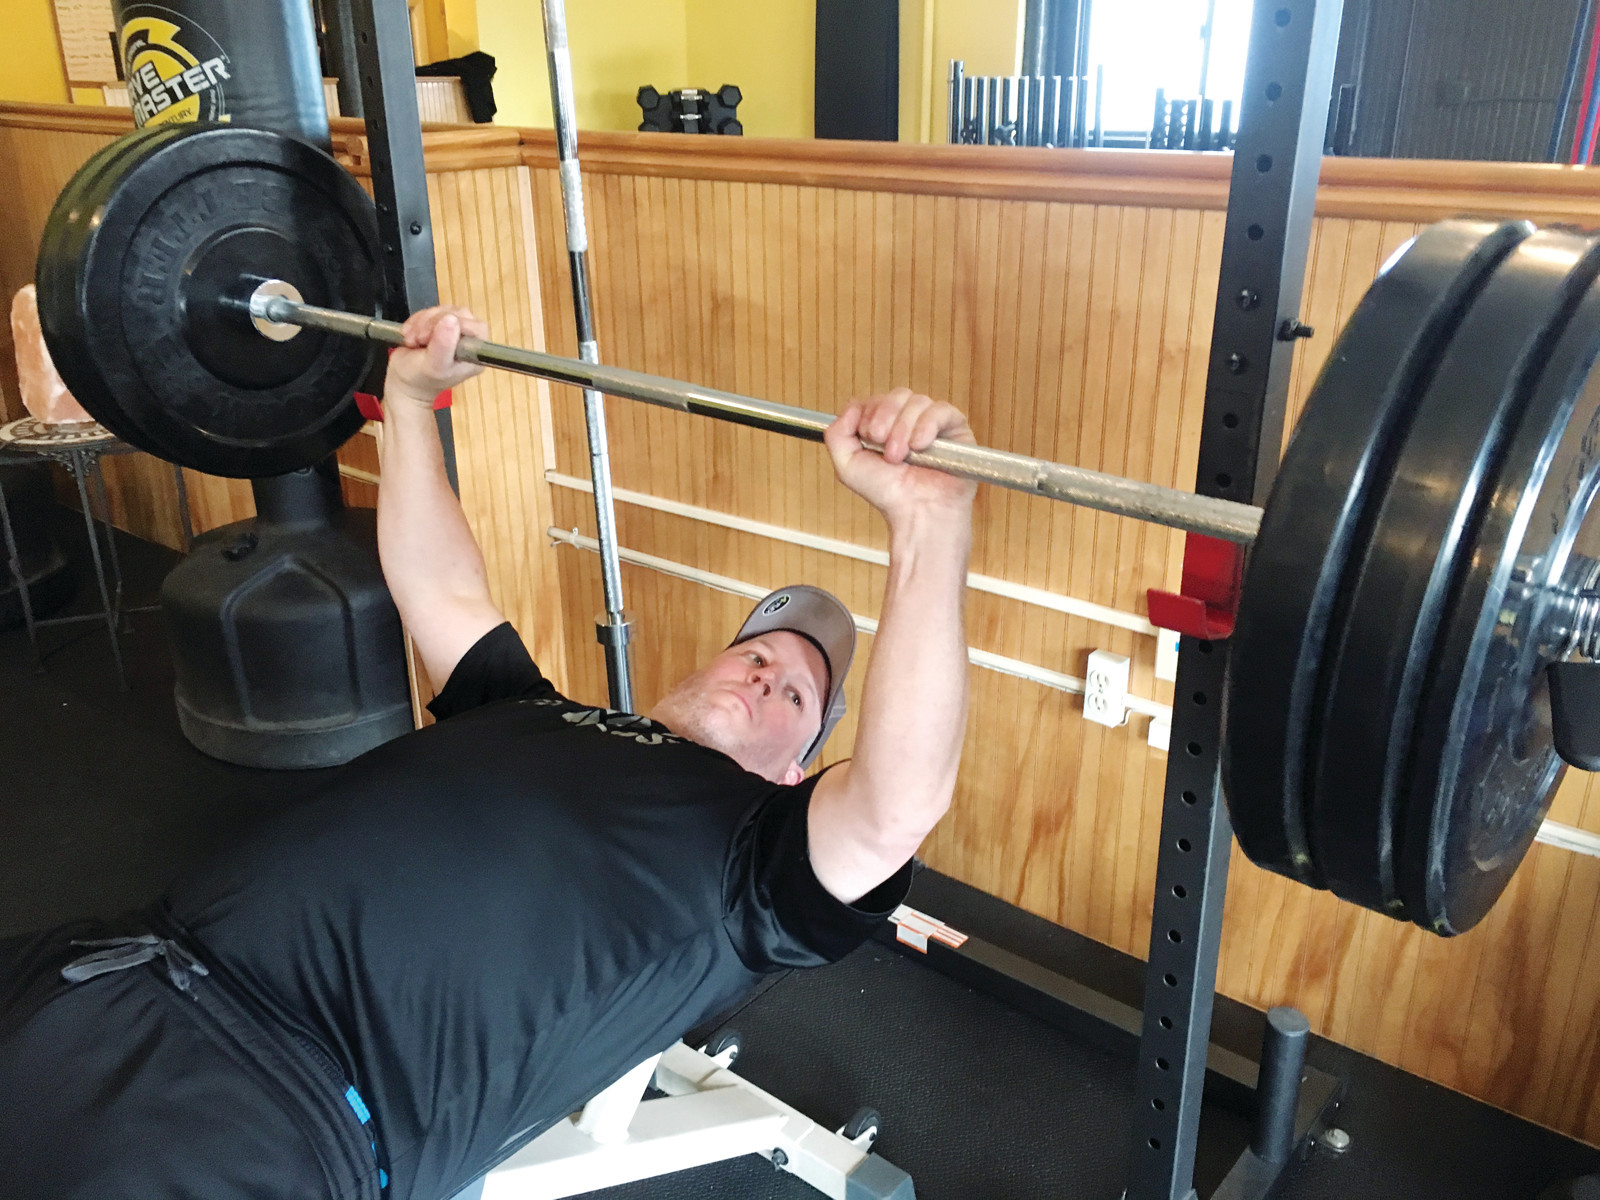 Warwick resident Rob McAllister seems to lift this 300 lb. weight with apparent ease as he works out at the busy fitness center, Infinity Fitness and Wellness in Cranston.